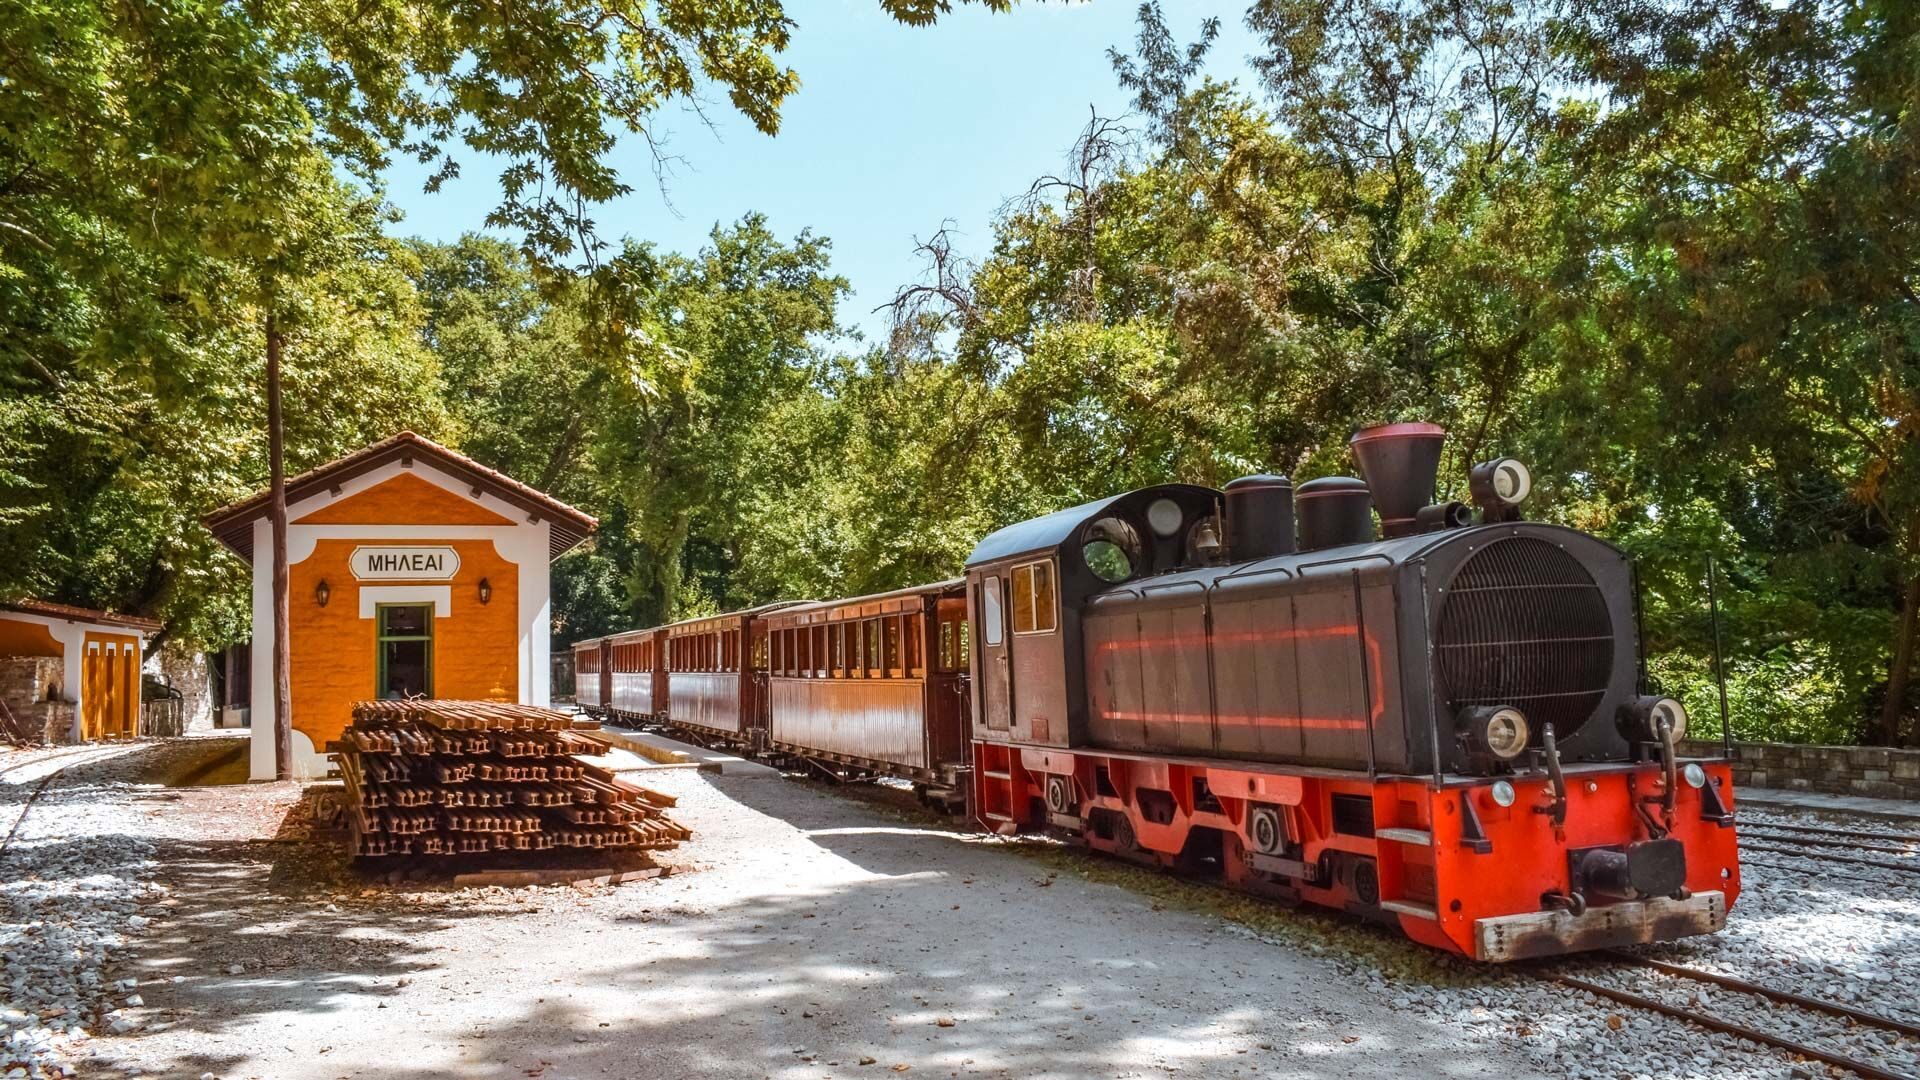 The legendary old steam train of Pelion is popularly known as Moutzouris